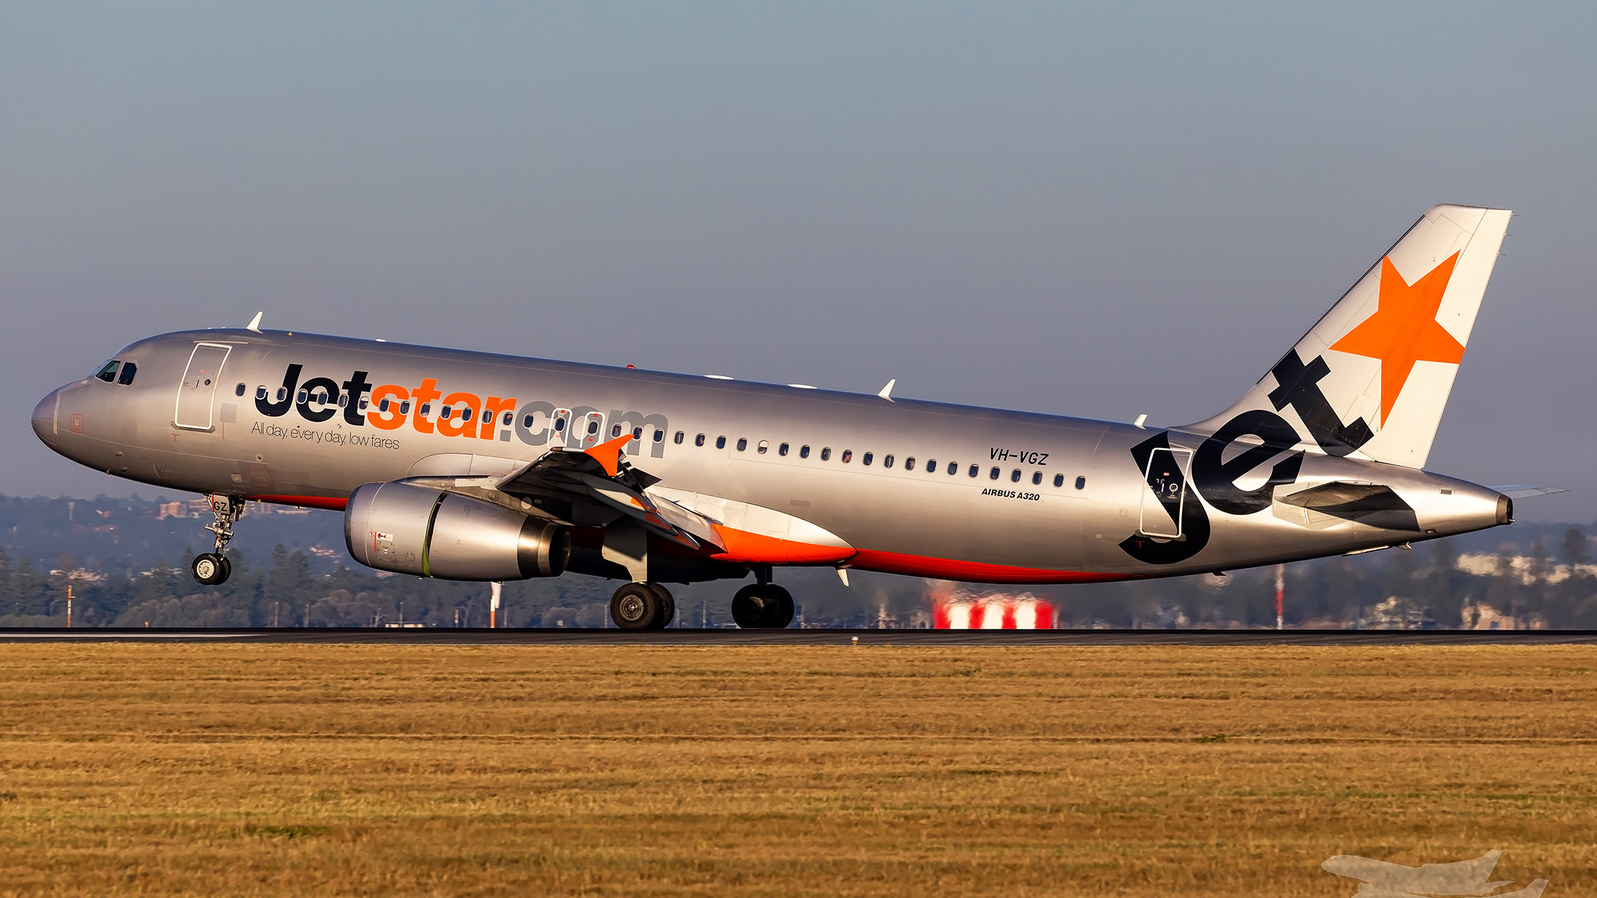 jetstar strike - HD 1597×898